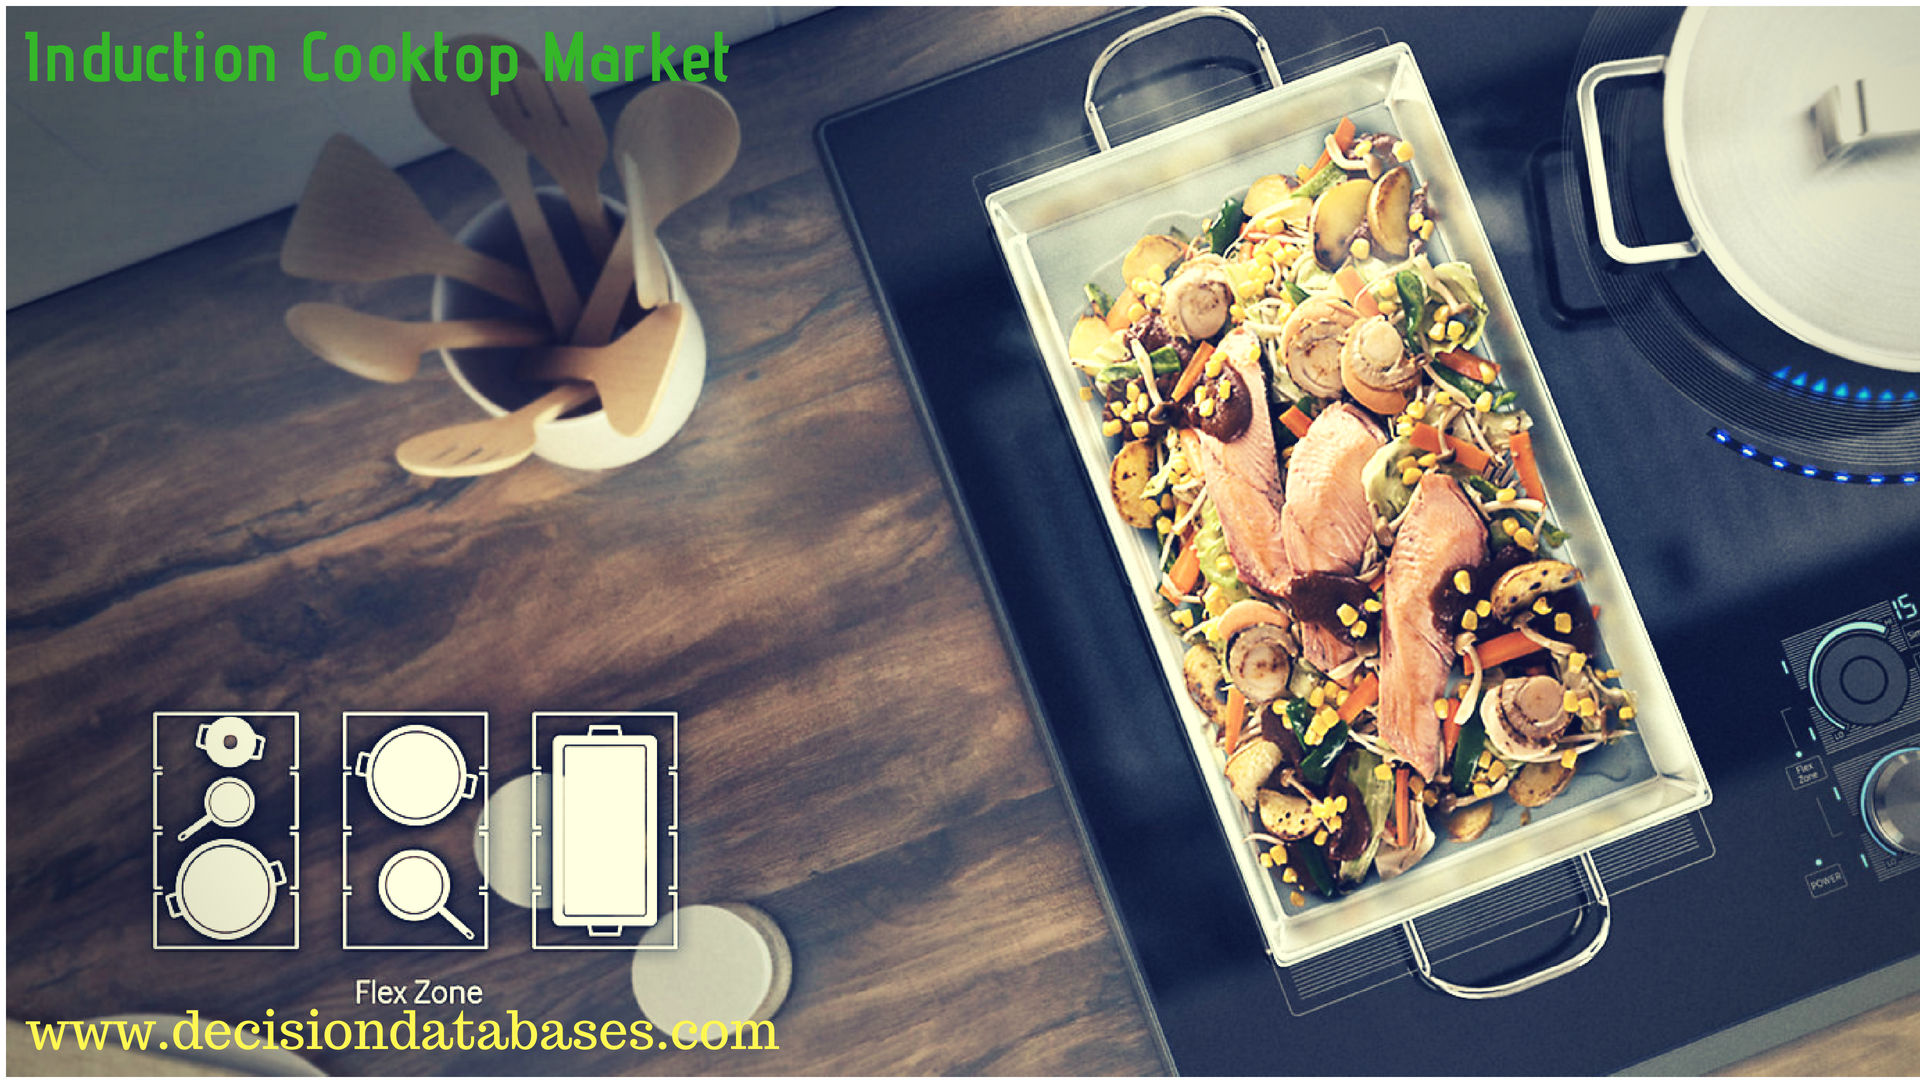 Induction Cooktop Market